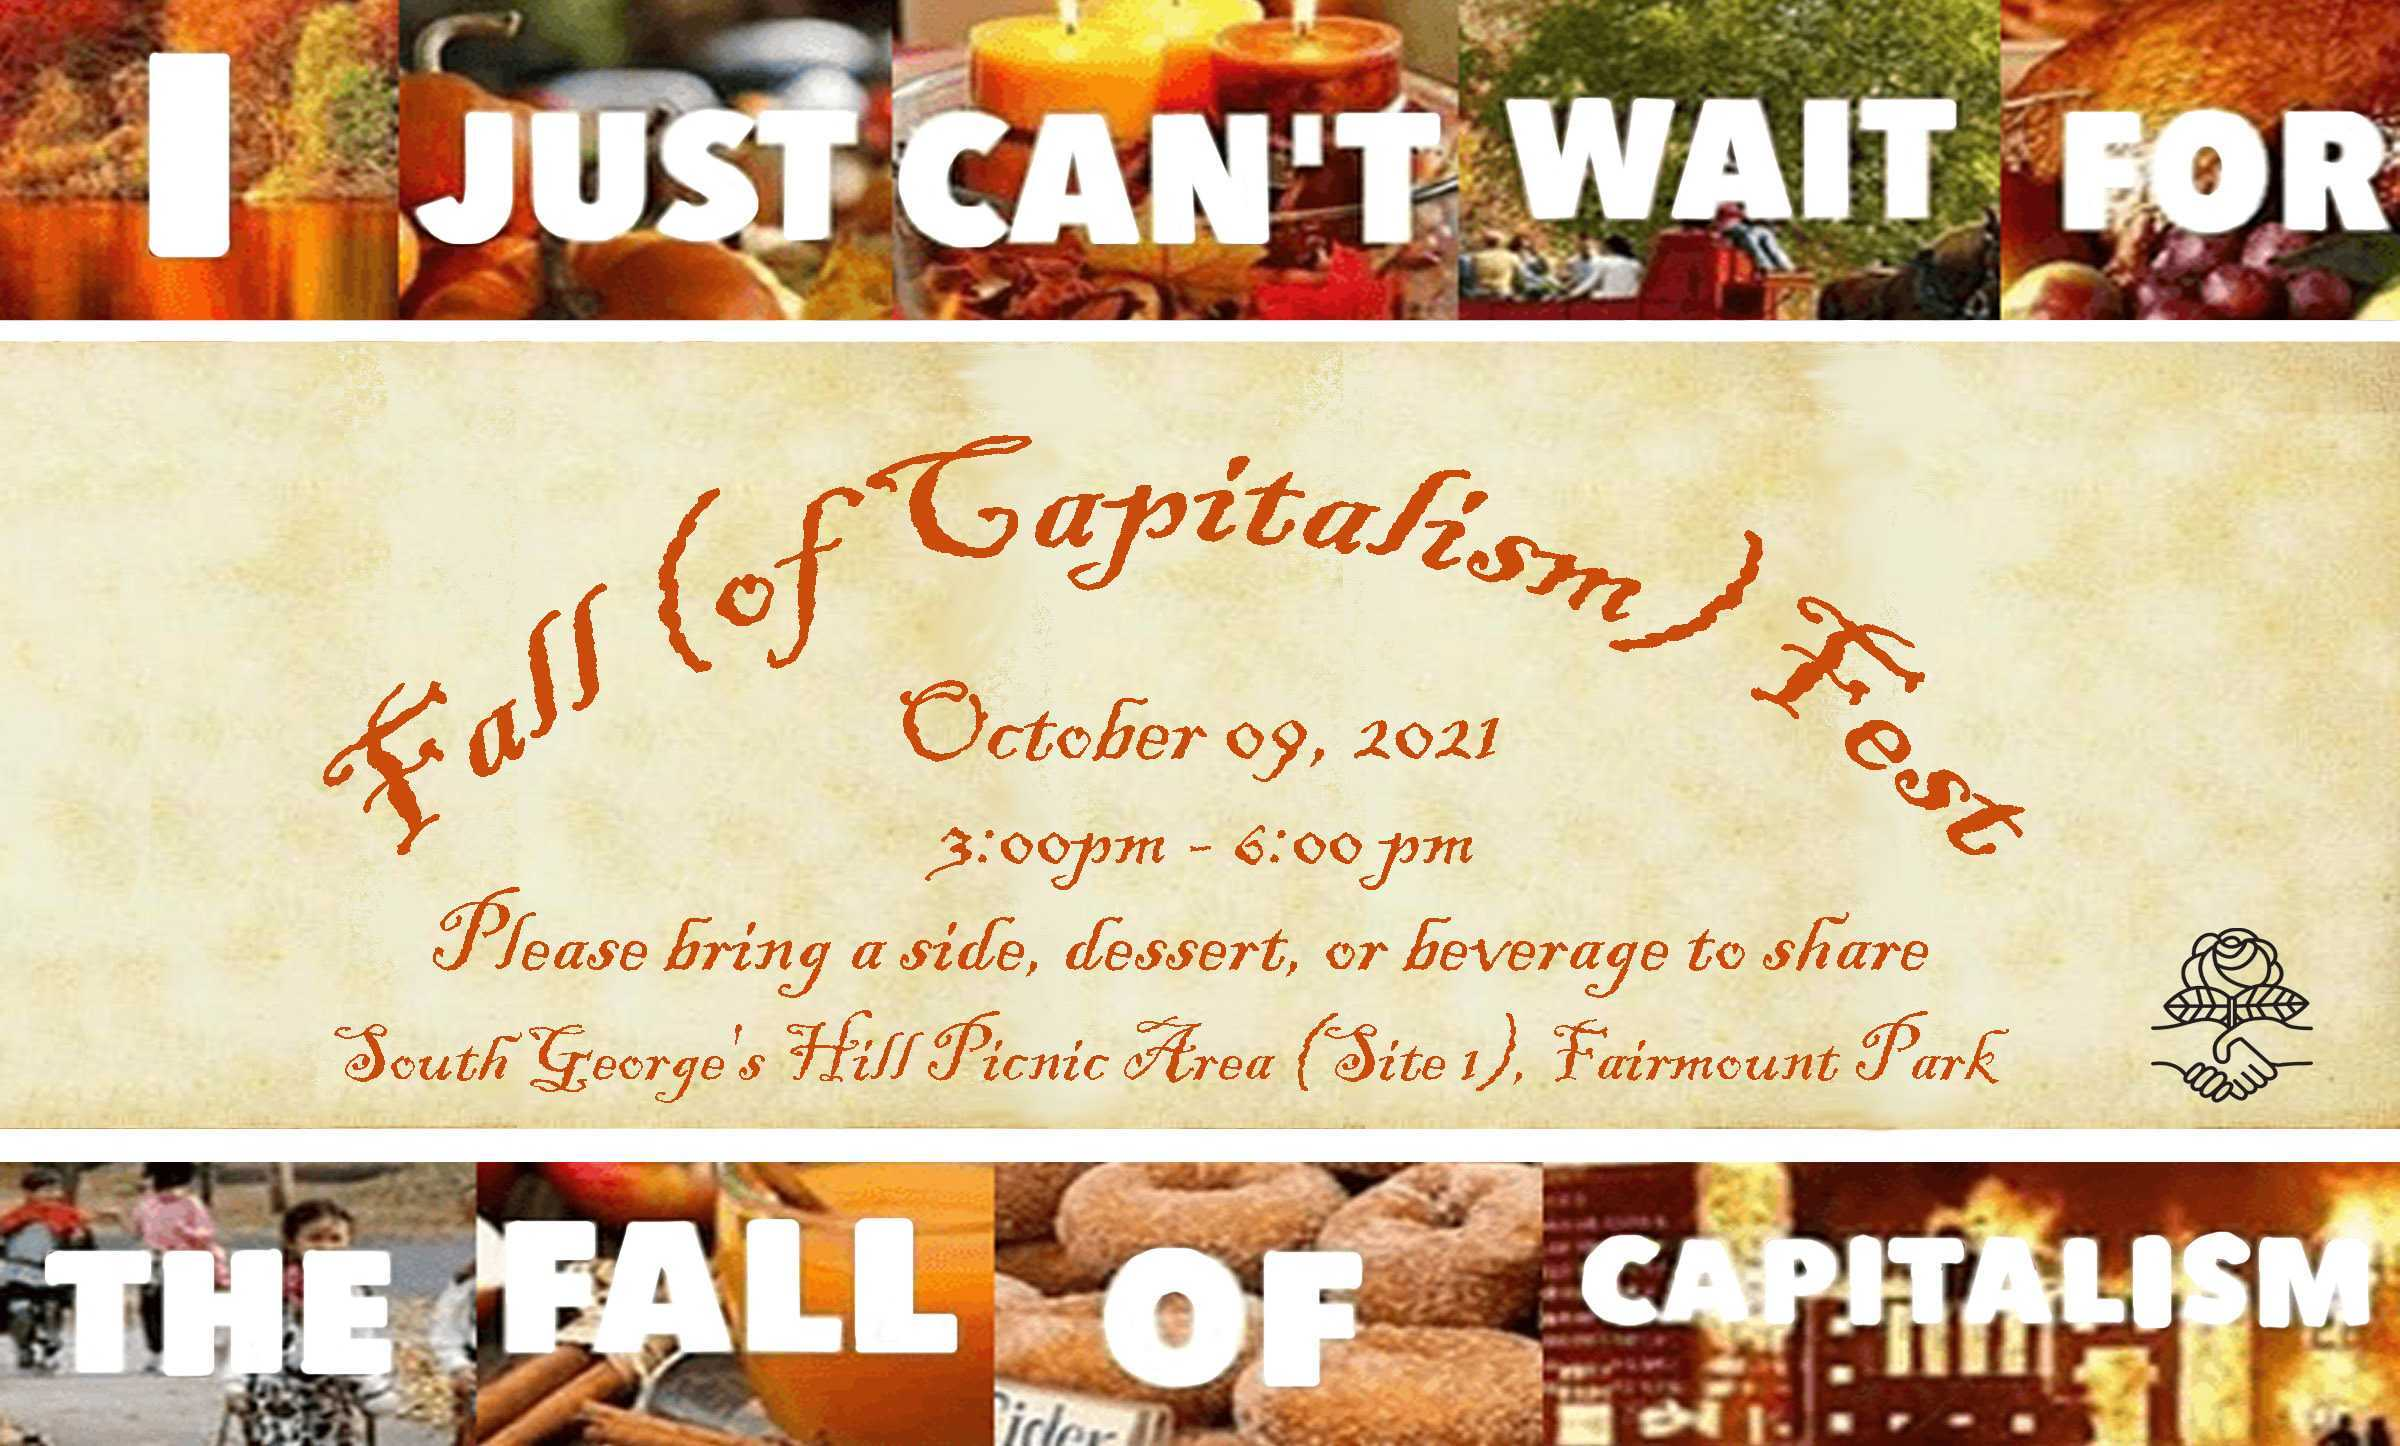 Fall (of Capitalism) Fest. Please bring a side, beverage, or dessert to share.